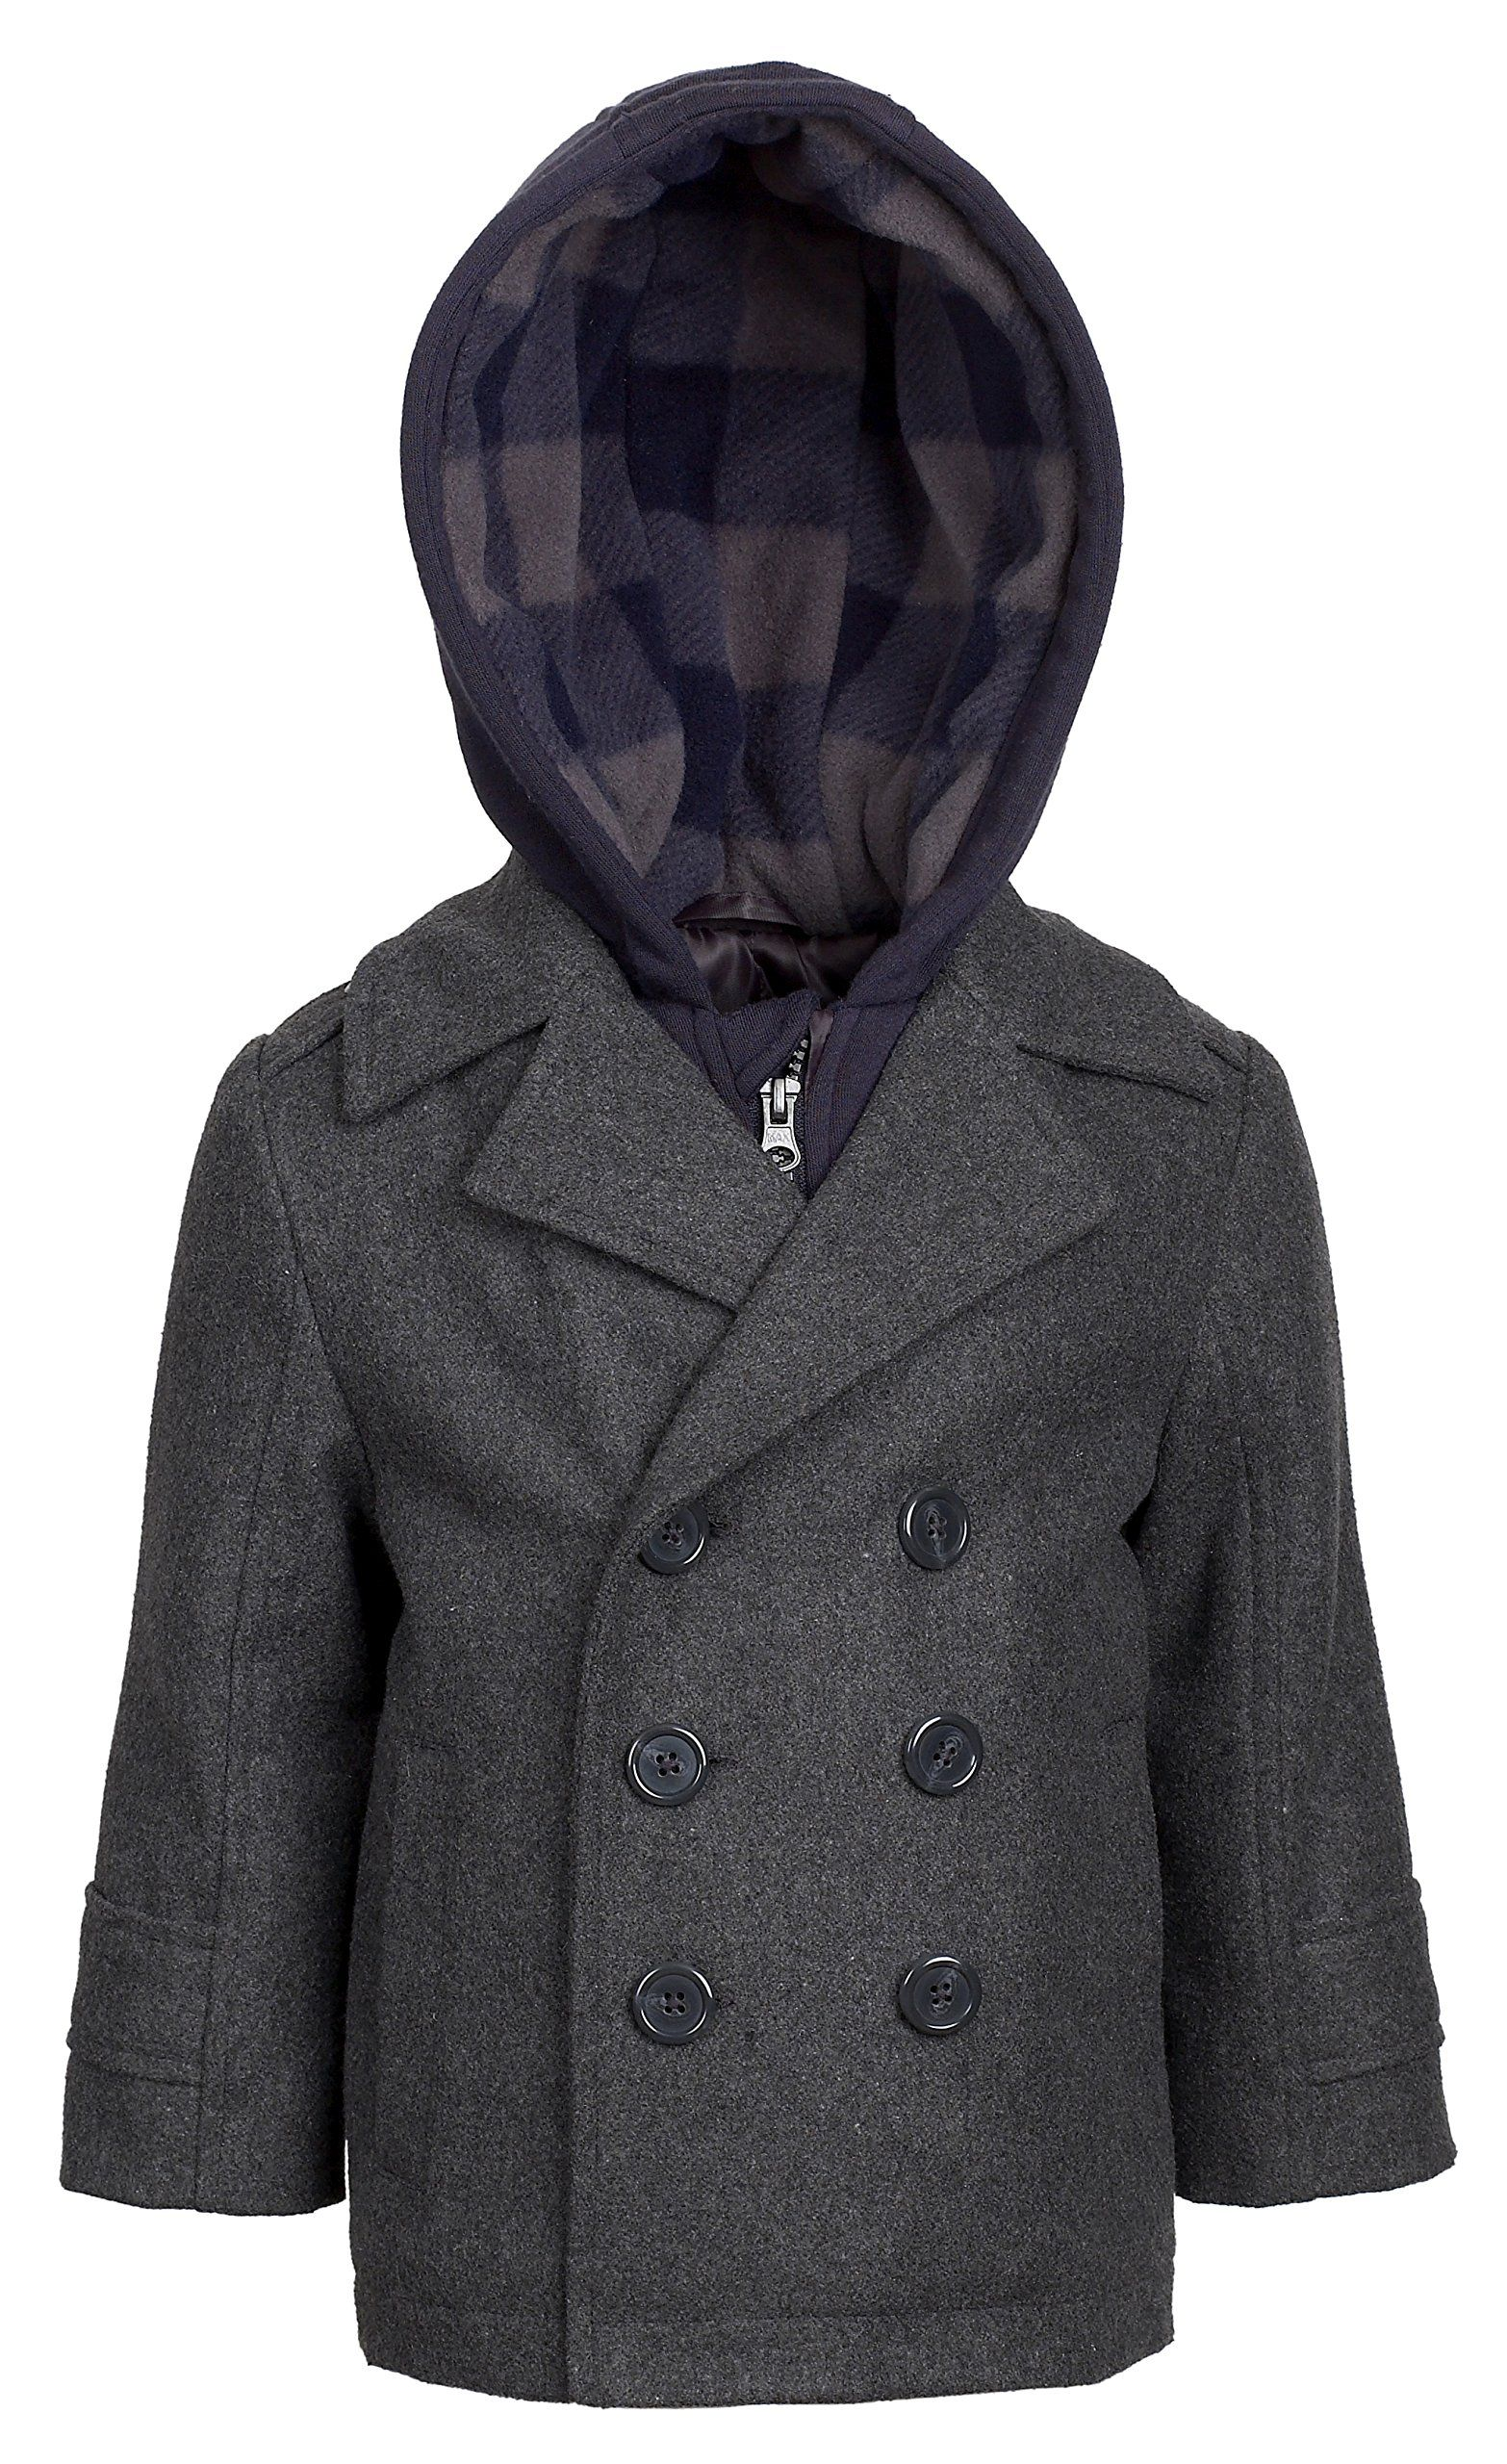 c0cdfc506 London Fog Boys Double Breasted Wool Blend Hooded Winter Peacoat ...